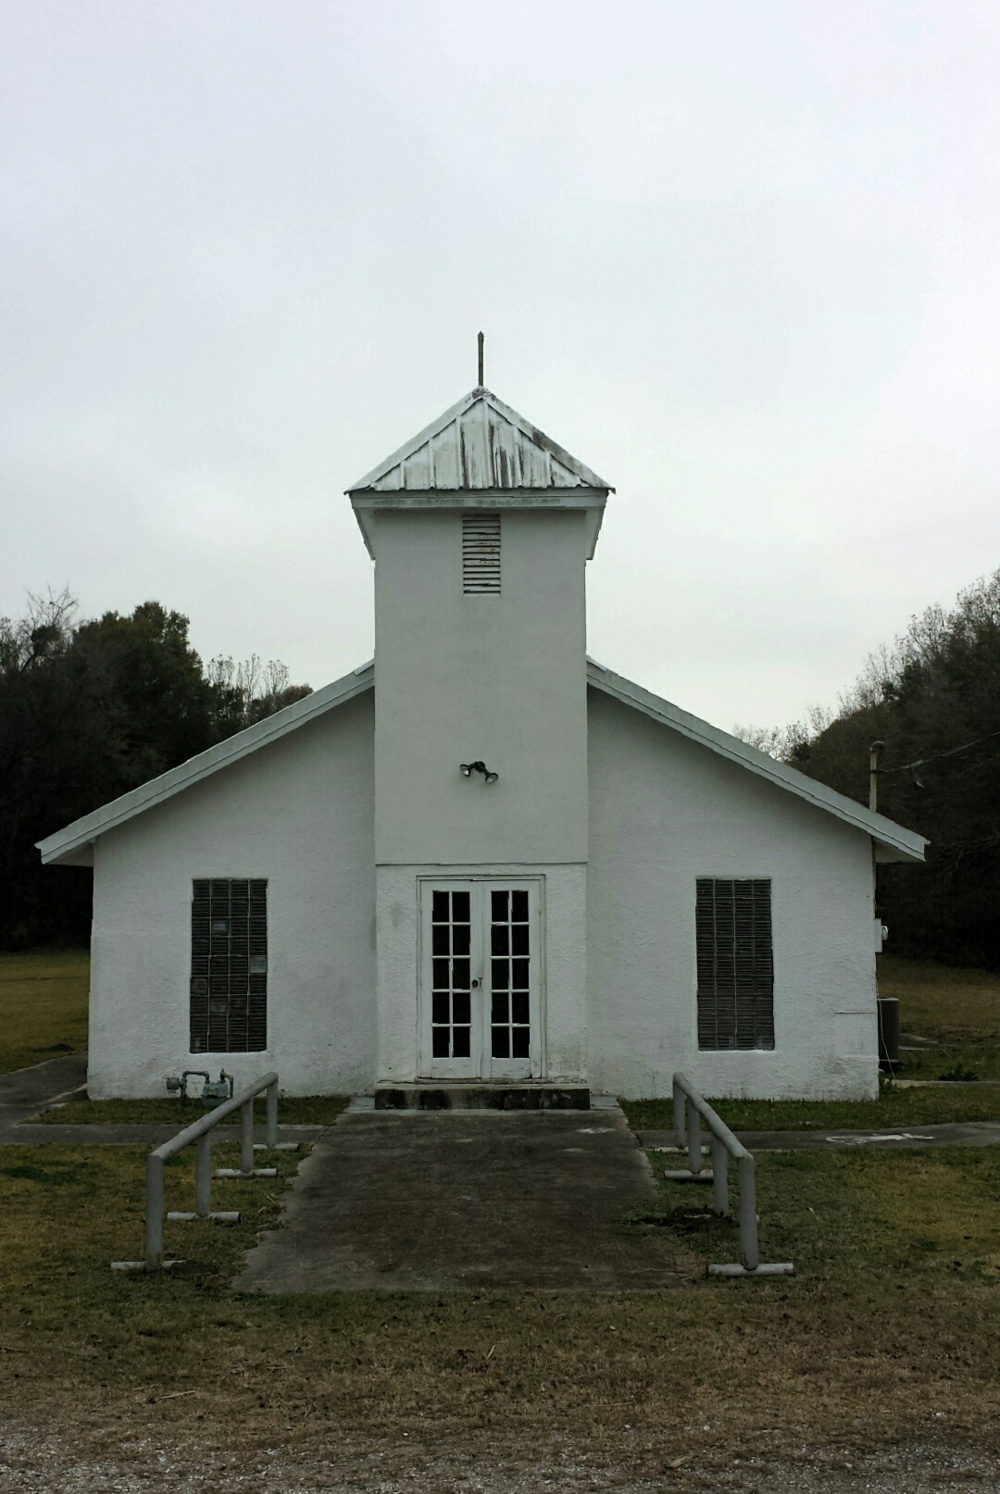 Methodist church, gibson, LA.  Photograph by lisa Qualls.